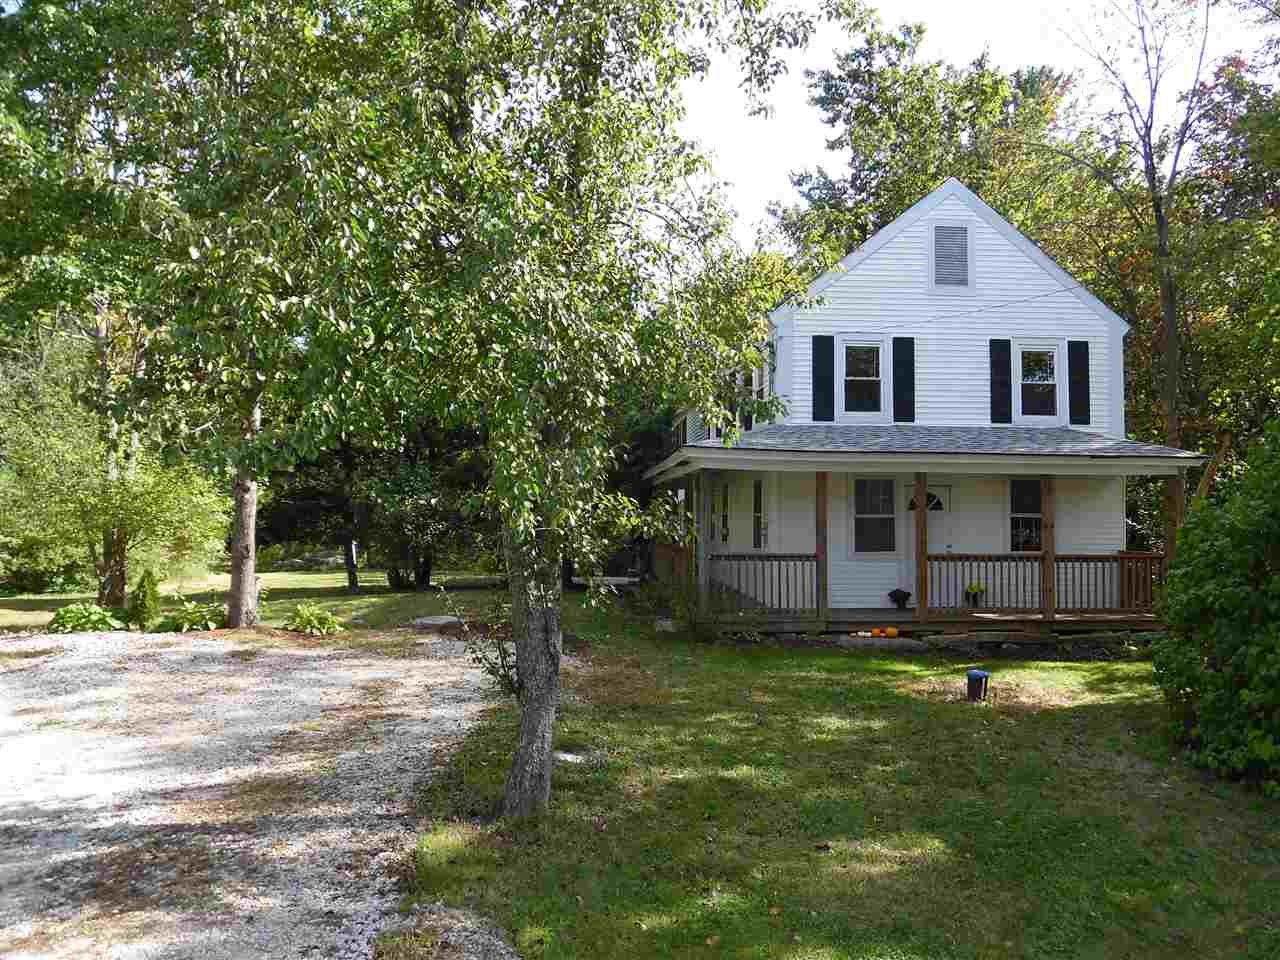 7 Old Deerfield Rd, Candia, NH 03034